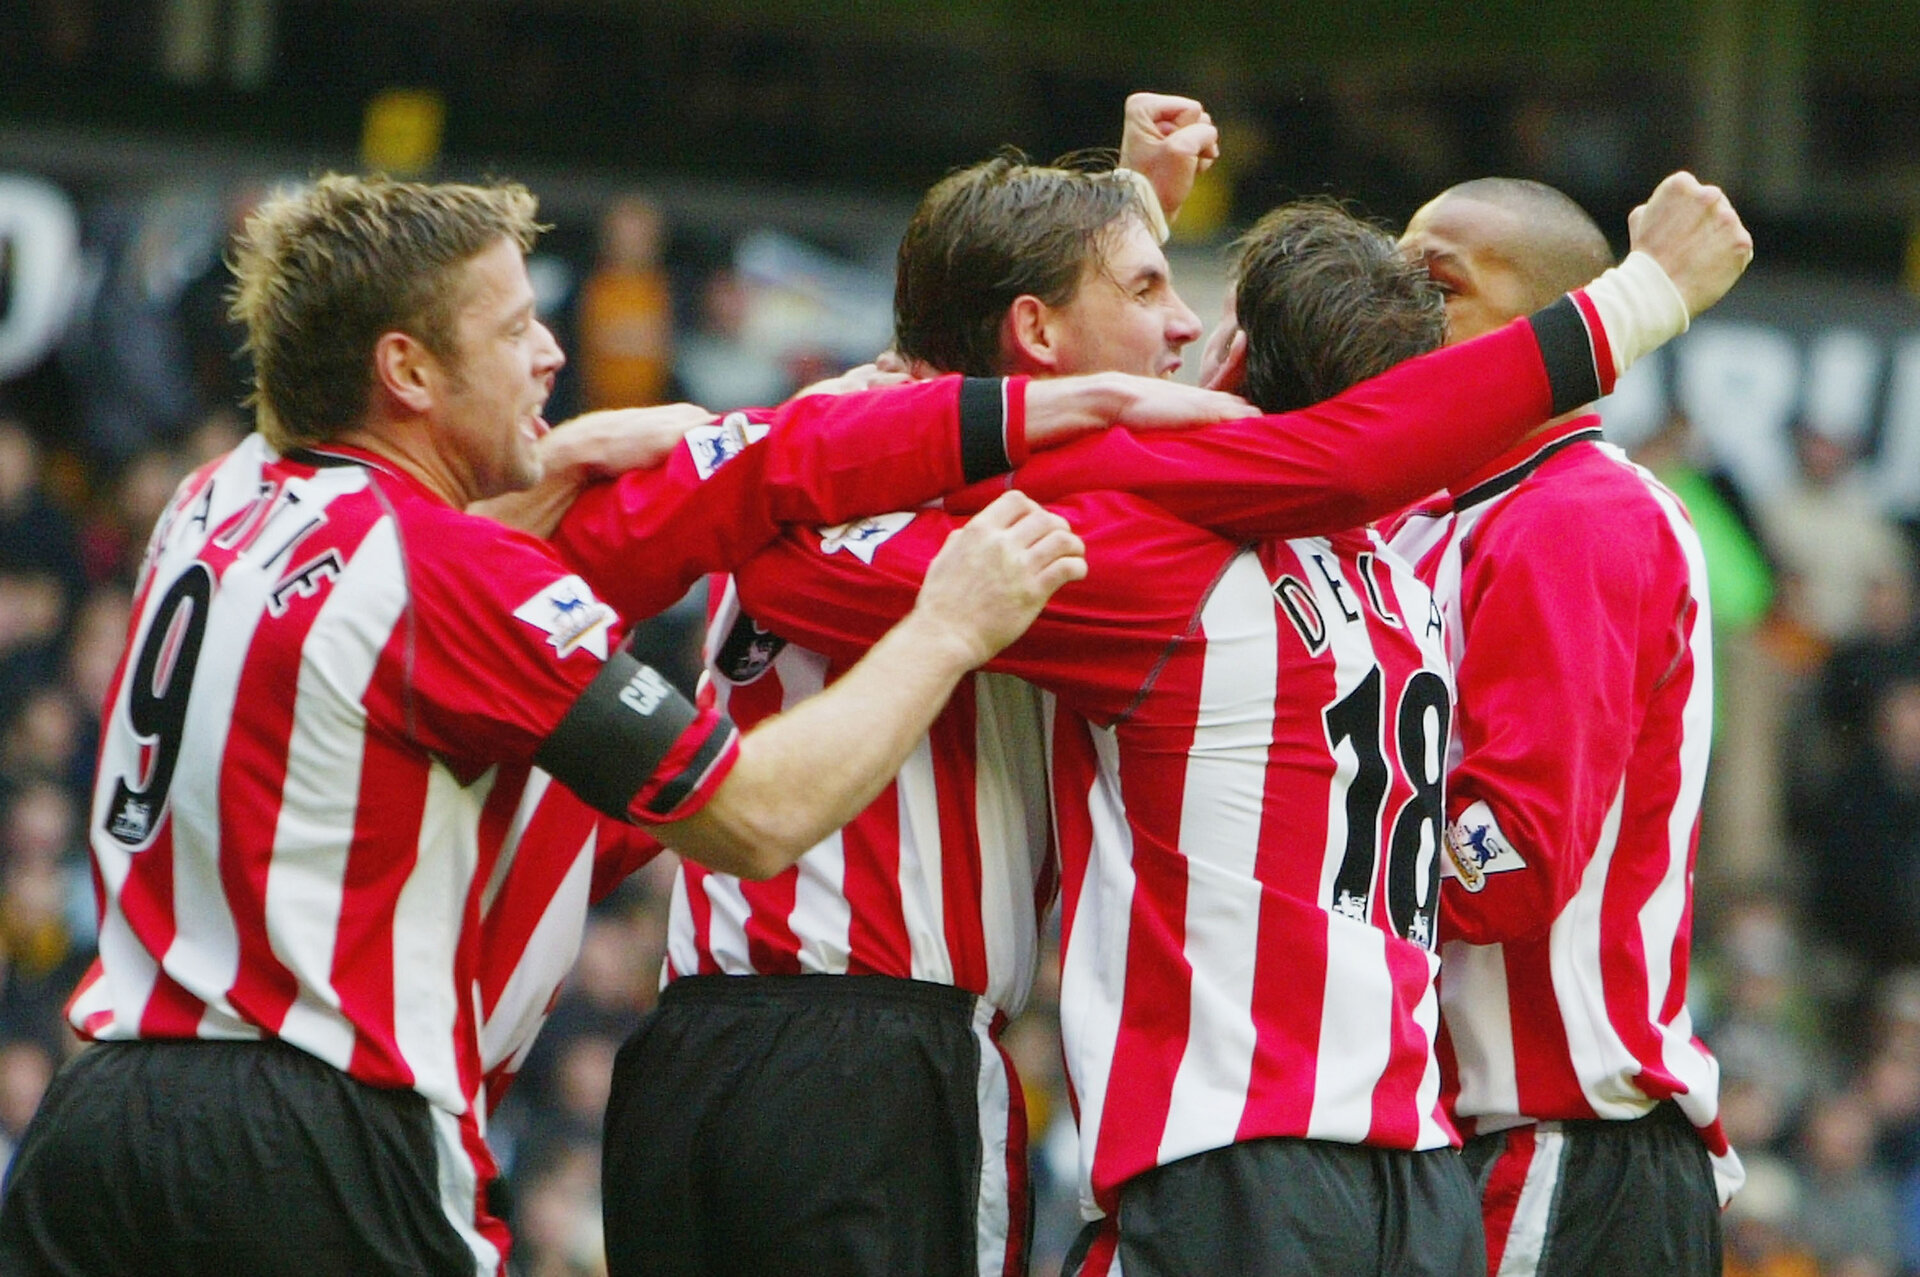 WOLVERHAMPTON, ENGLAND - APRIL 3:  Claus Lundekvam celebrates his goal with team mates during the FA Barclaycard Premiership match between Wolverhampton Wanderers and Southampton at The Molineux on April 3, 2004 in Wolverhampton, England.  (Photo by Jamie McDonald/Getty Images)